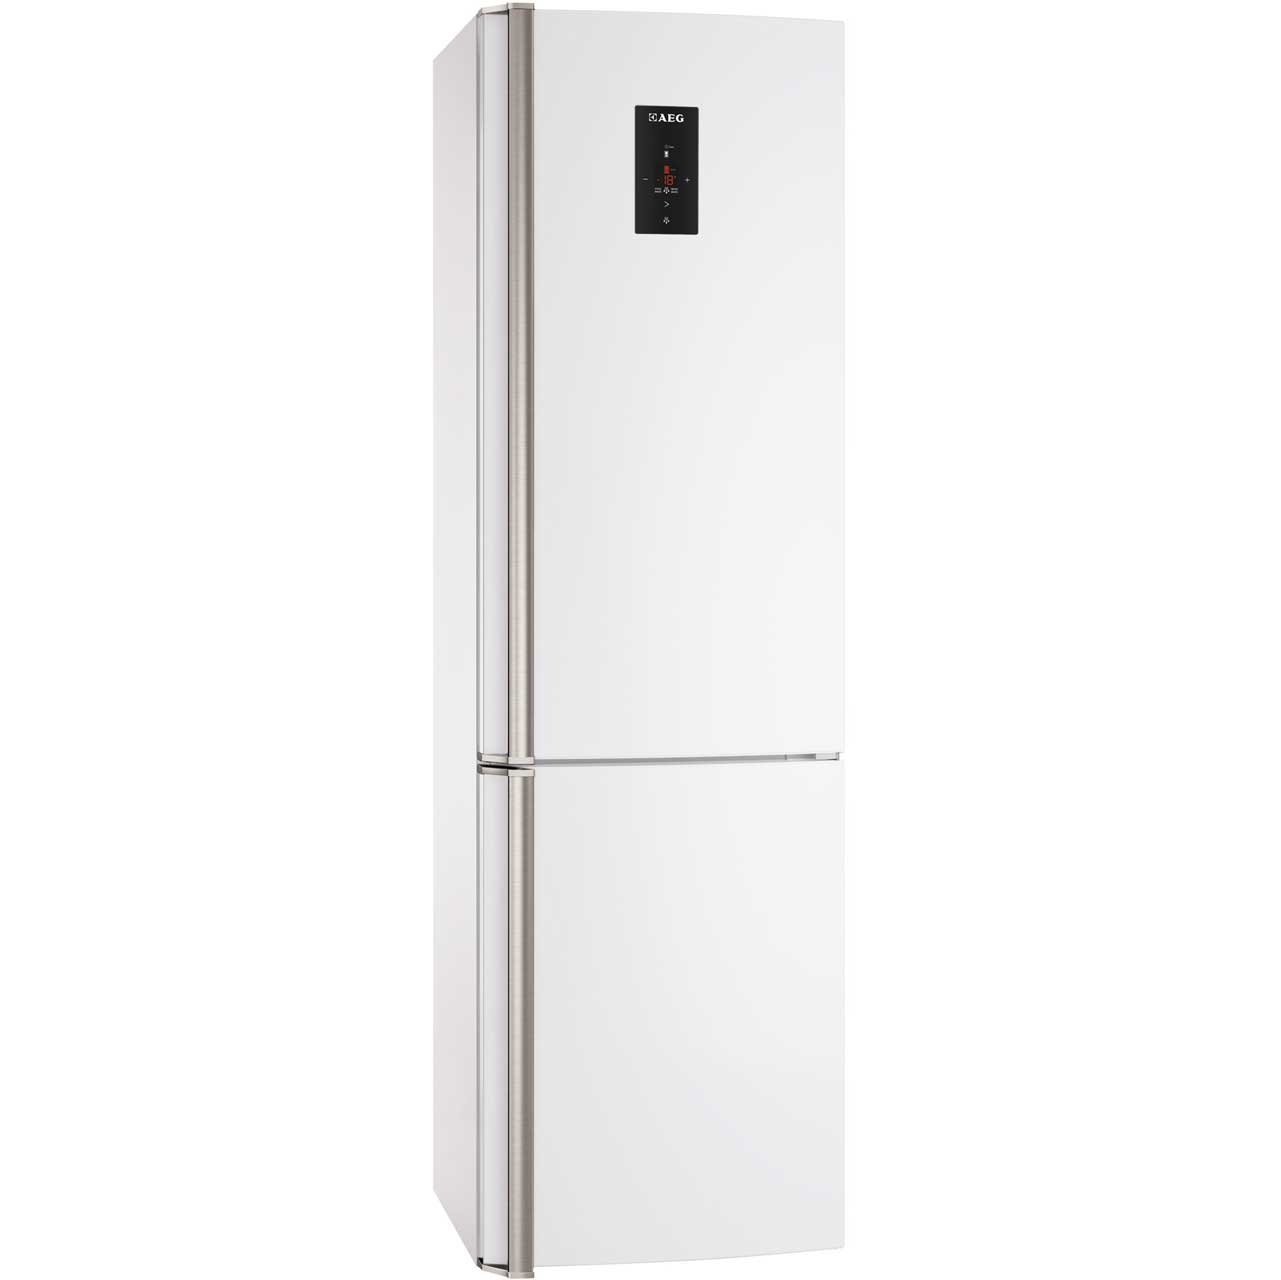 AEG S83520CMW2 Free Standing Fridge Freezer Frost Free in White